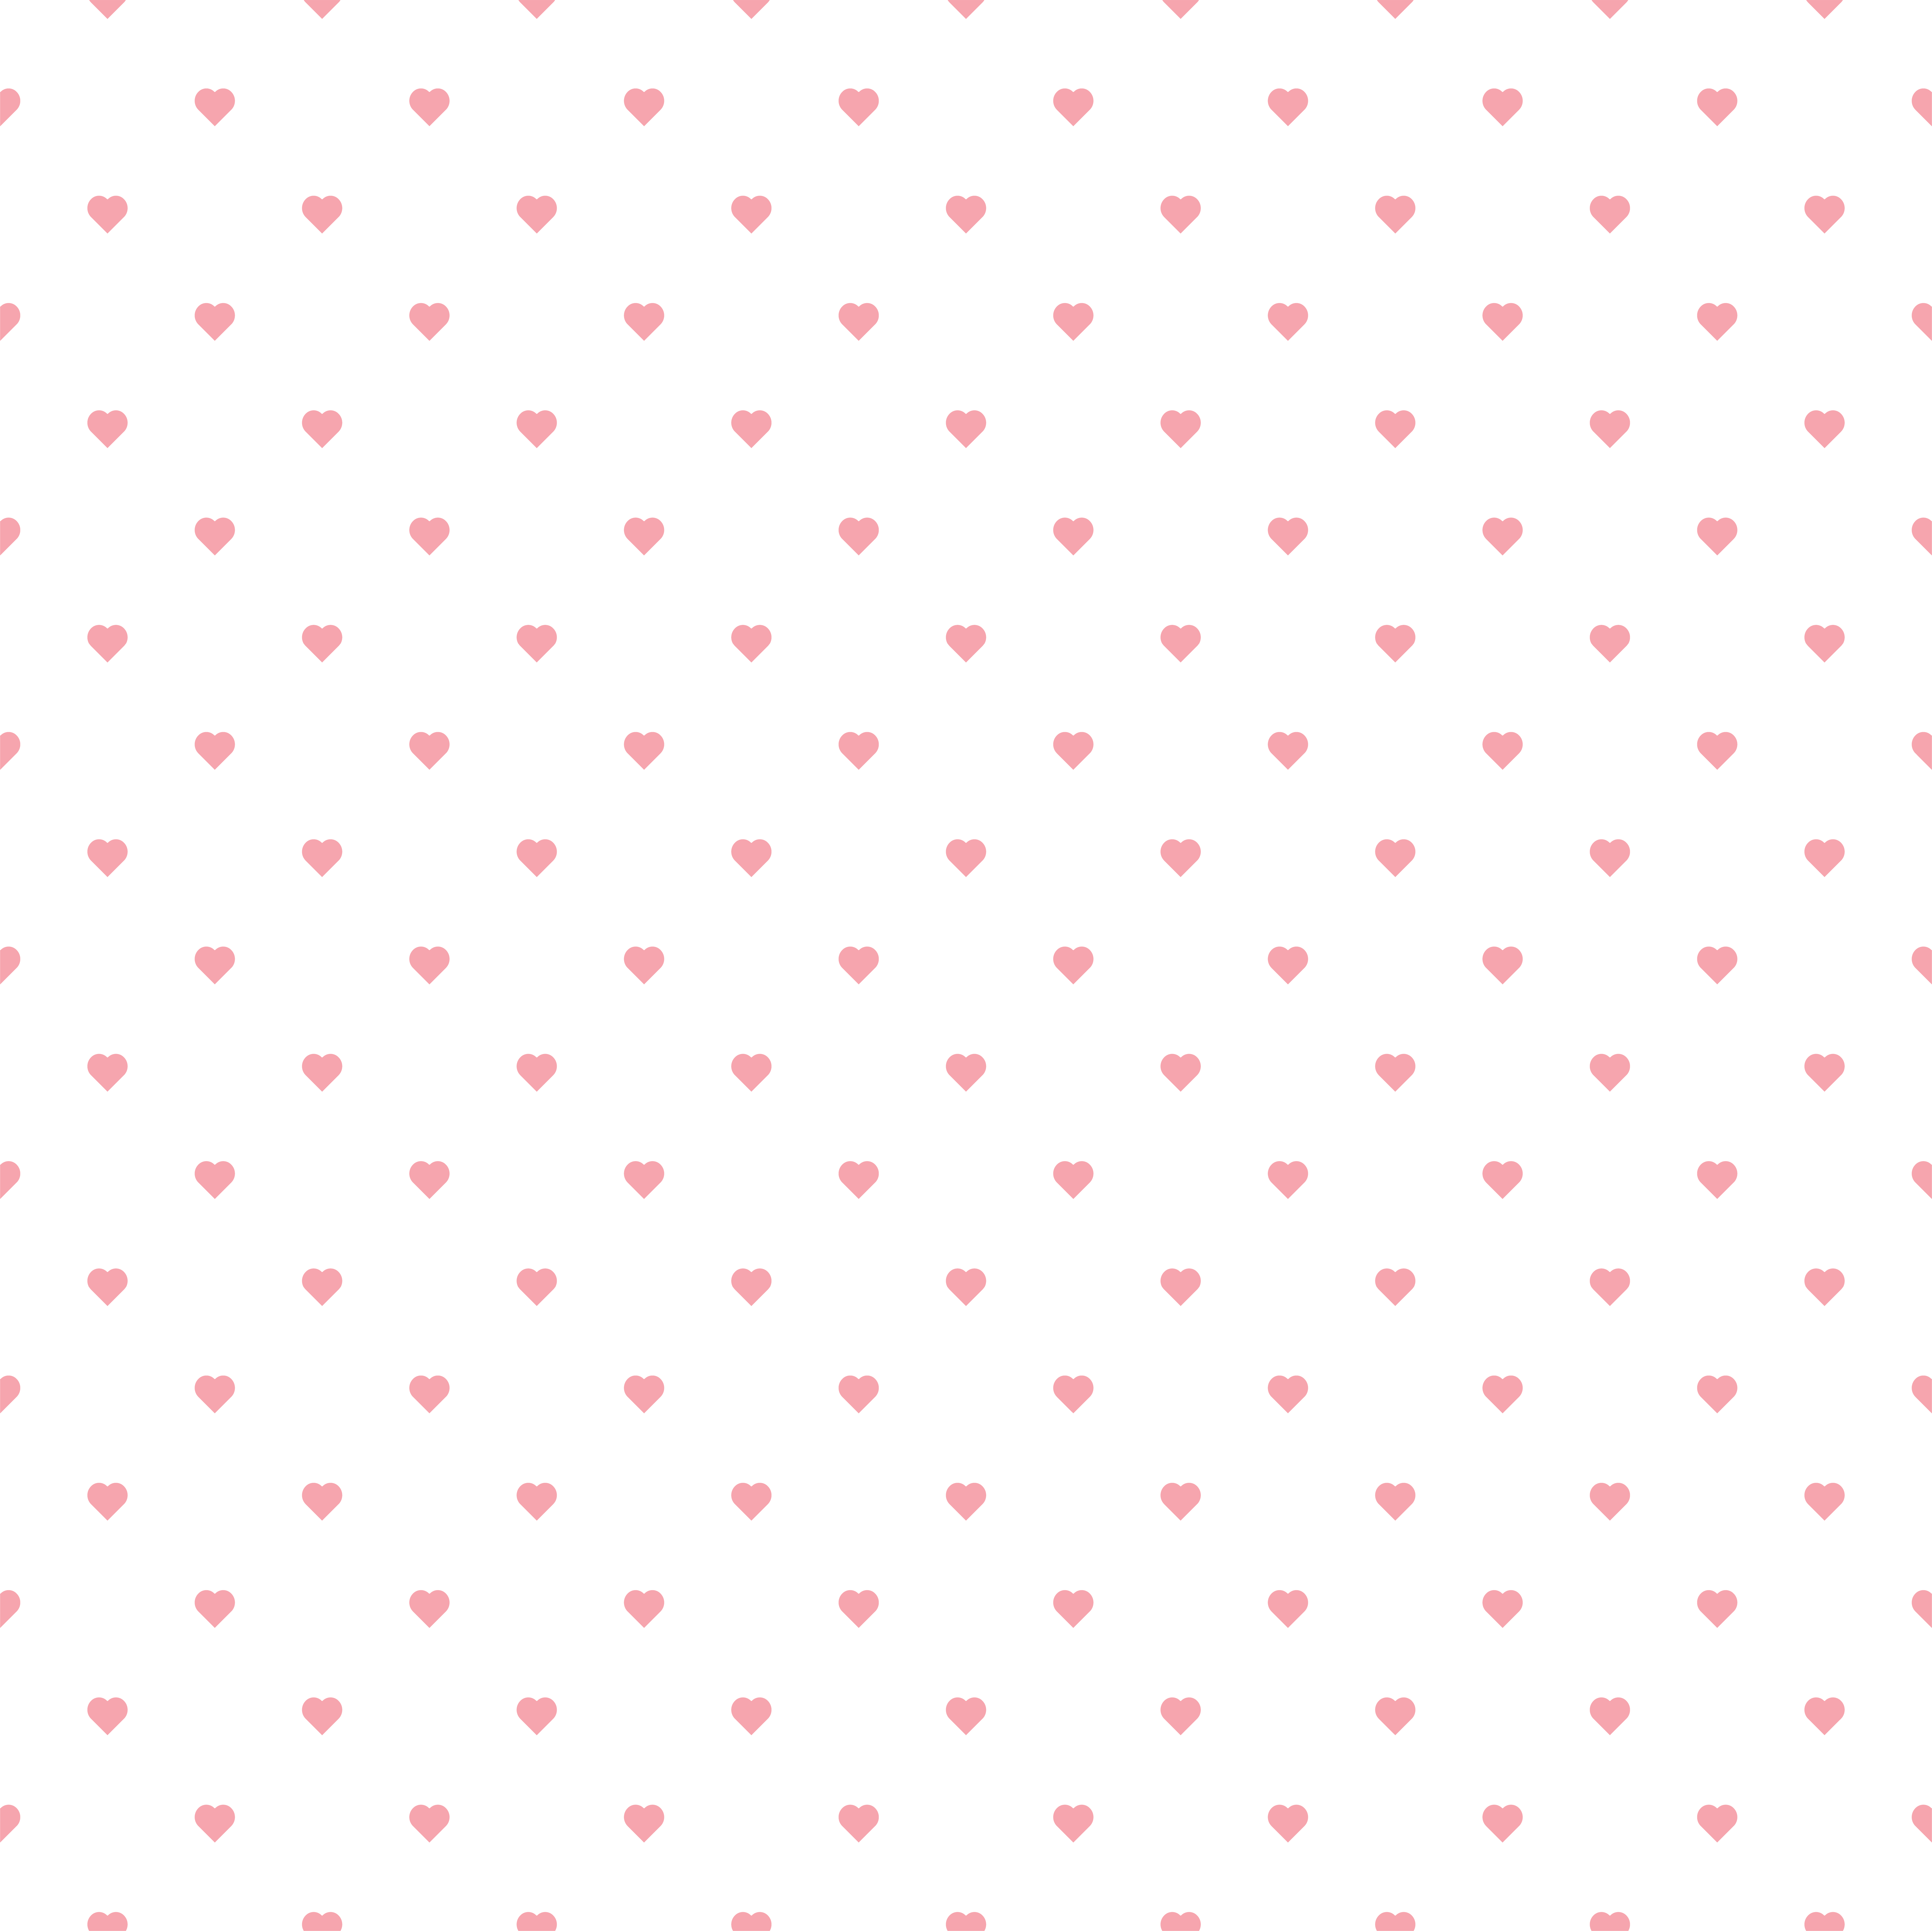 Hearts Background Png - Pink Hearts for Background PNG Clip Art Image | Gallery ...